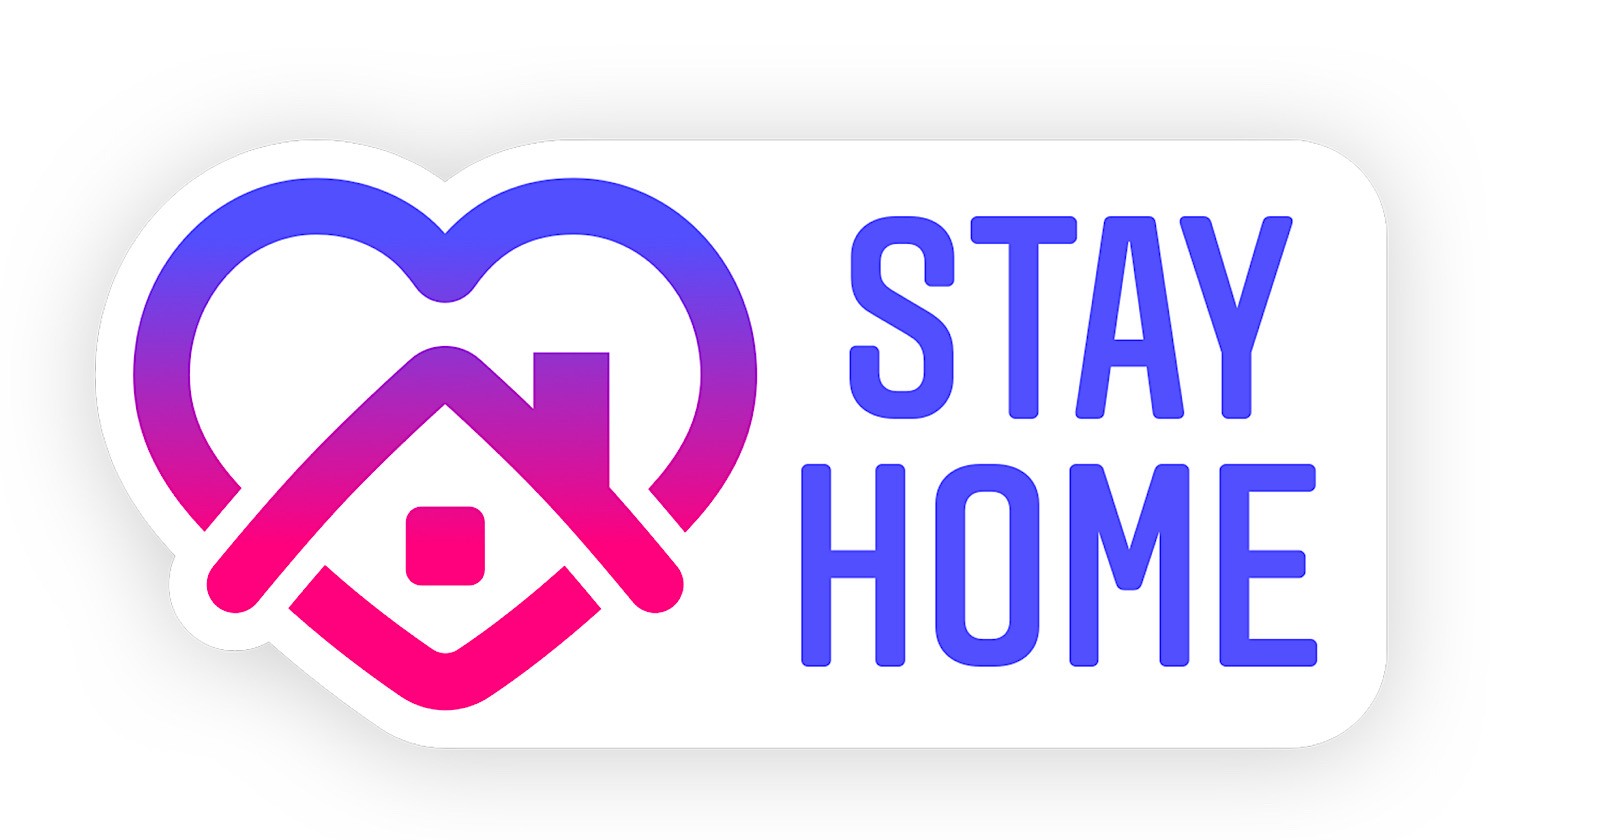 Instagram Logo Covid 19 Stay Home Images